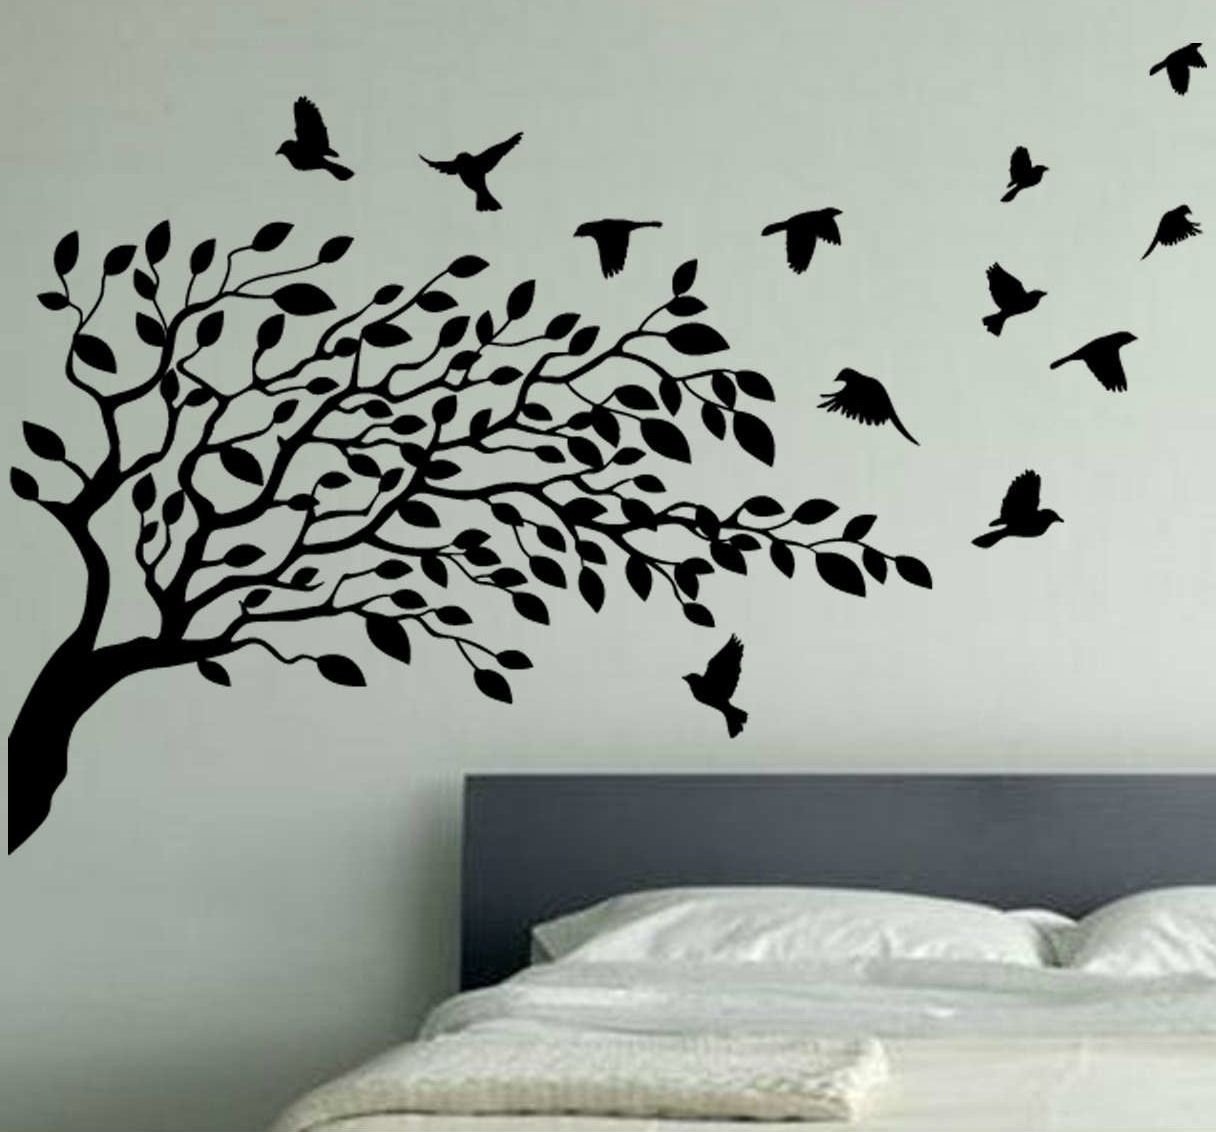 Wallpaper Wall Decals Stickers Art Vinyl Removable Birdcage Bird - How to make vinyl wall decals with silhouette cameo